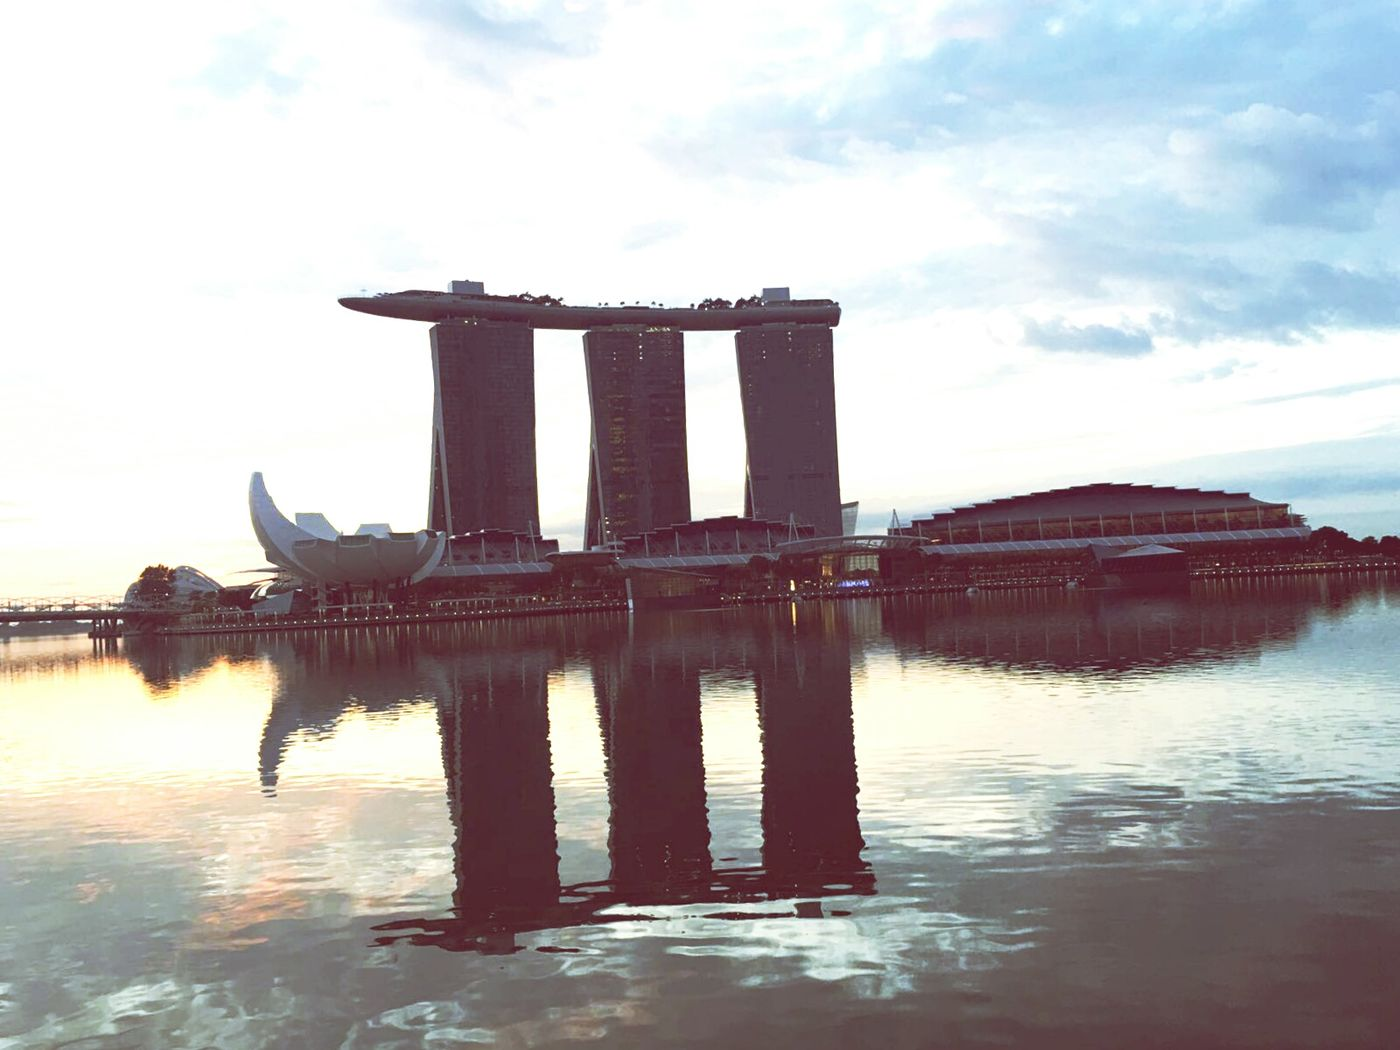 Sigapore Reflection Architecture Travel Destinations Travel Sky City Cloud - Sky Built Structure Outdoors Business Finance And Industry No People Sunset River Water Building Exterior Bridge - Man Made Structure Day Nature